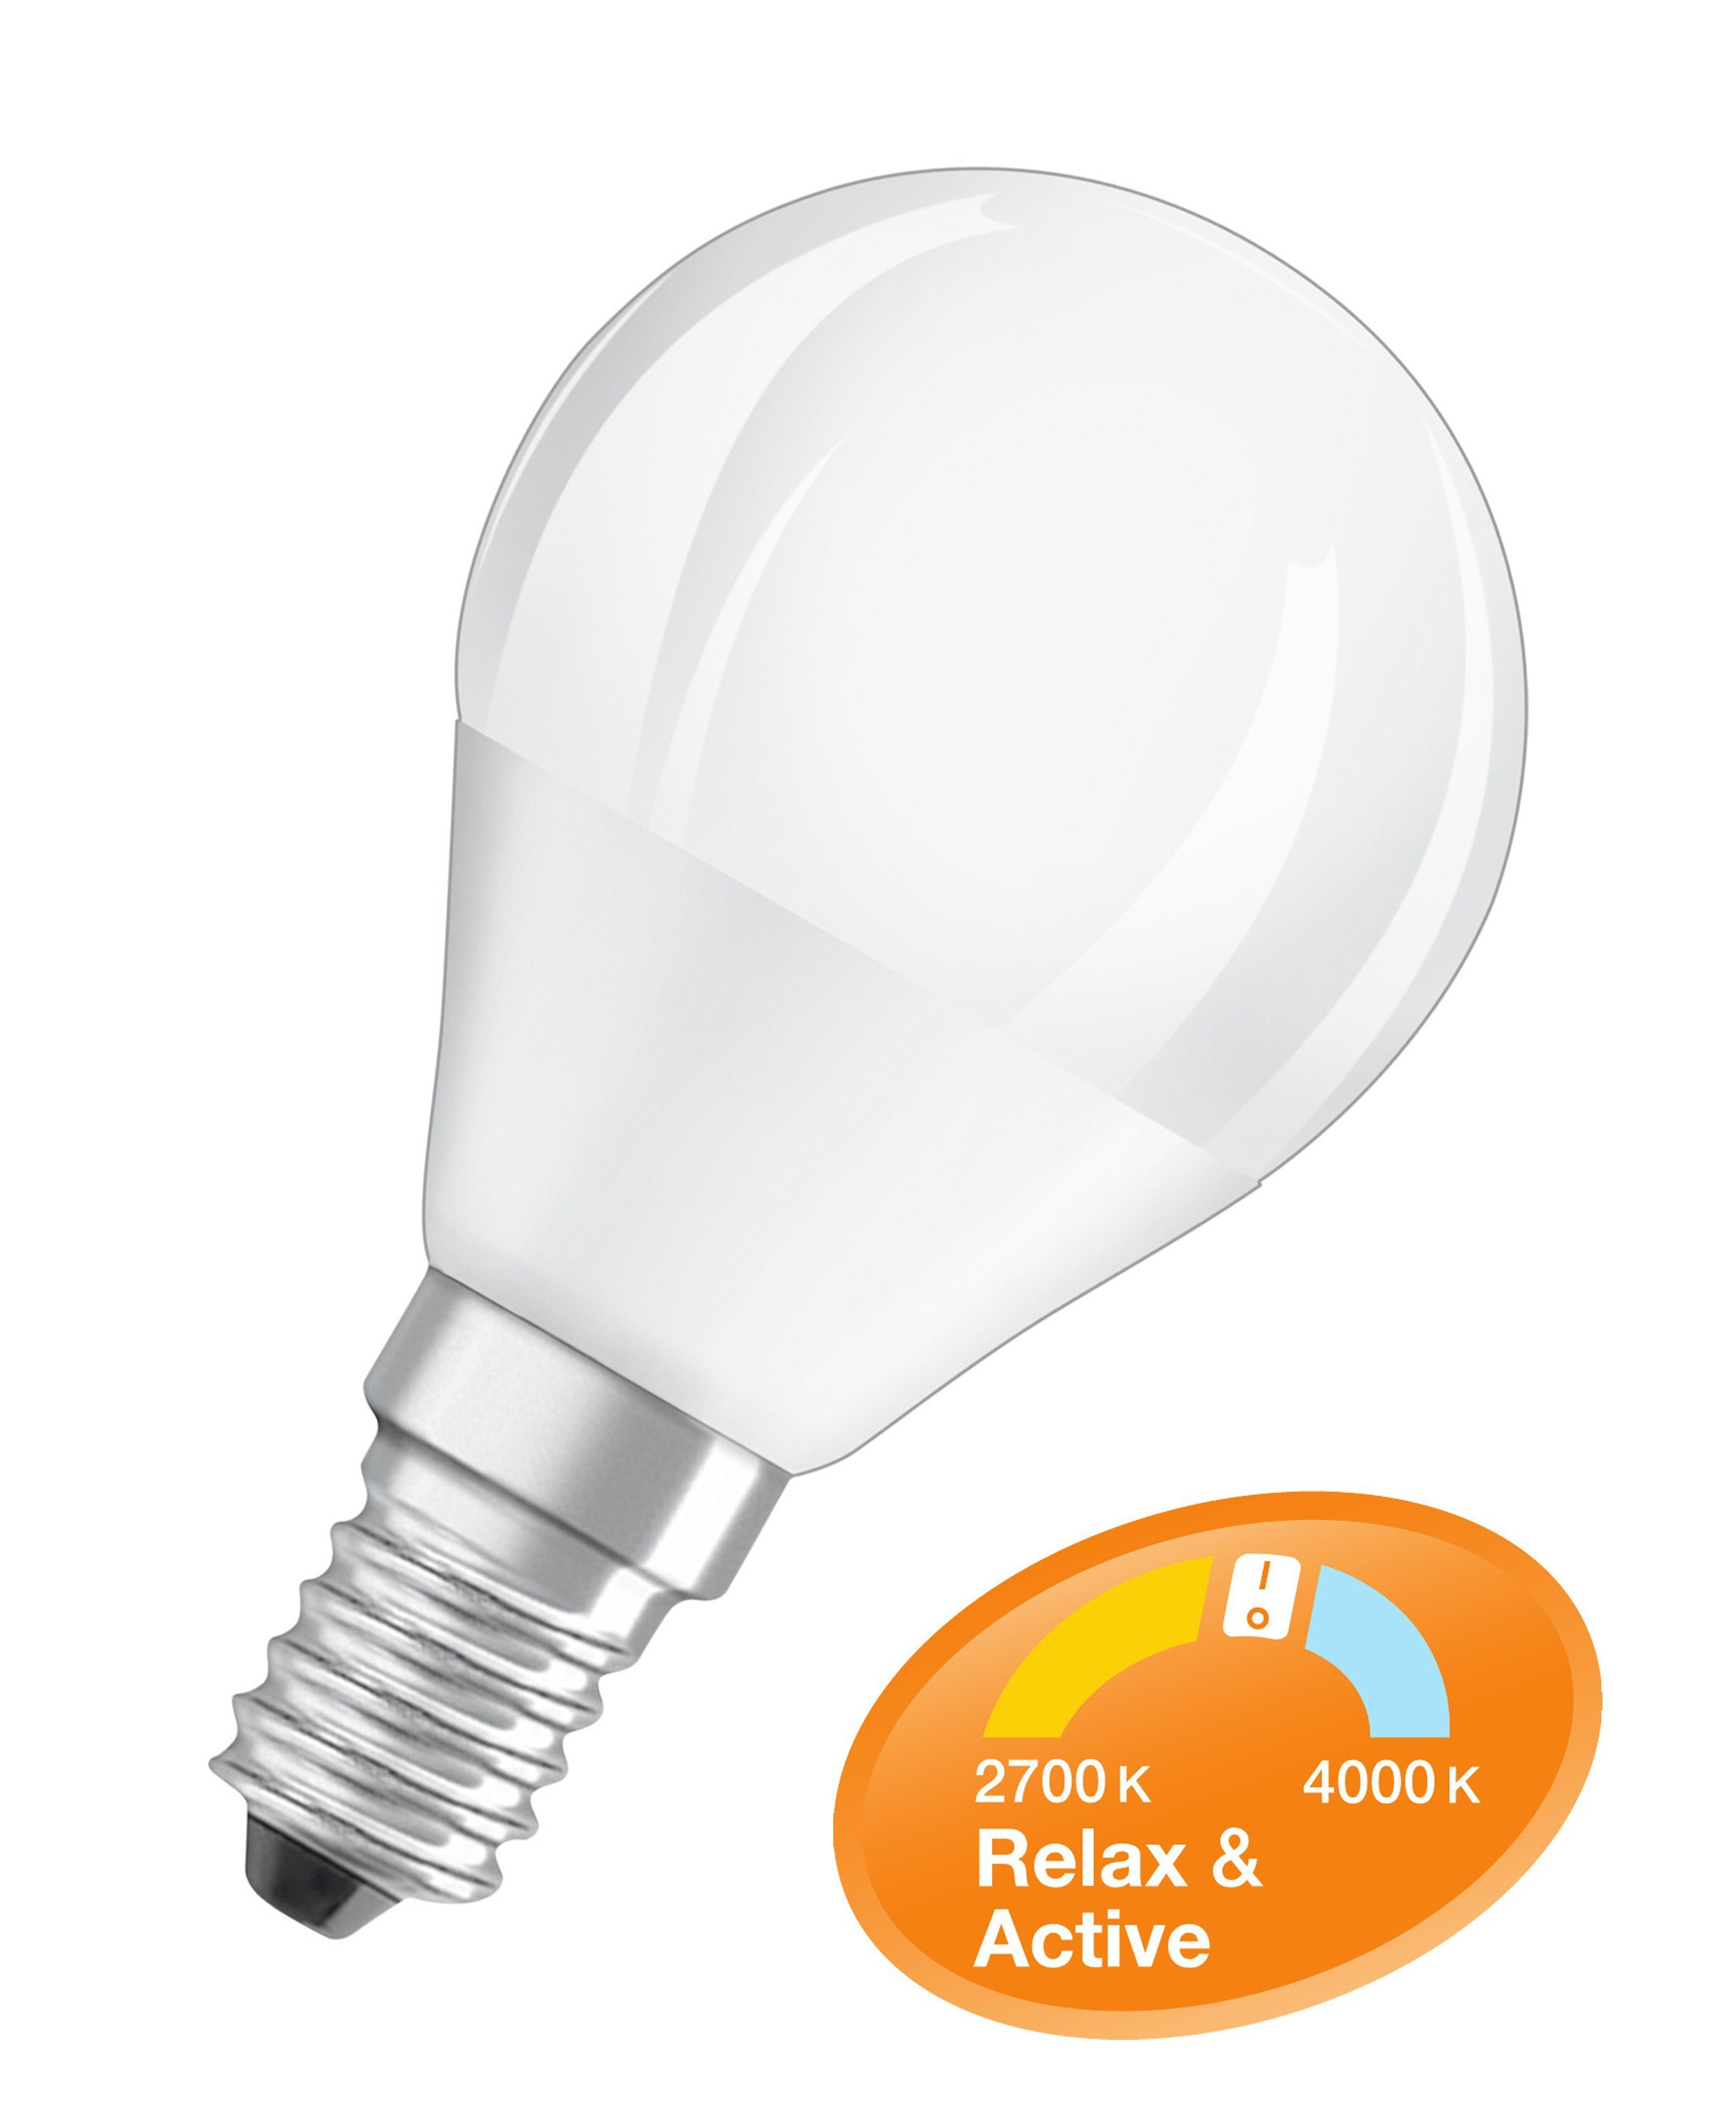 Osram LED RELAX and ACTIVE CLASSIC P LED-Lampe, 470 lm »SST CLAS P 40 5 W/827 E14«